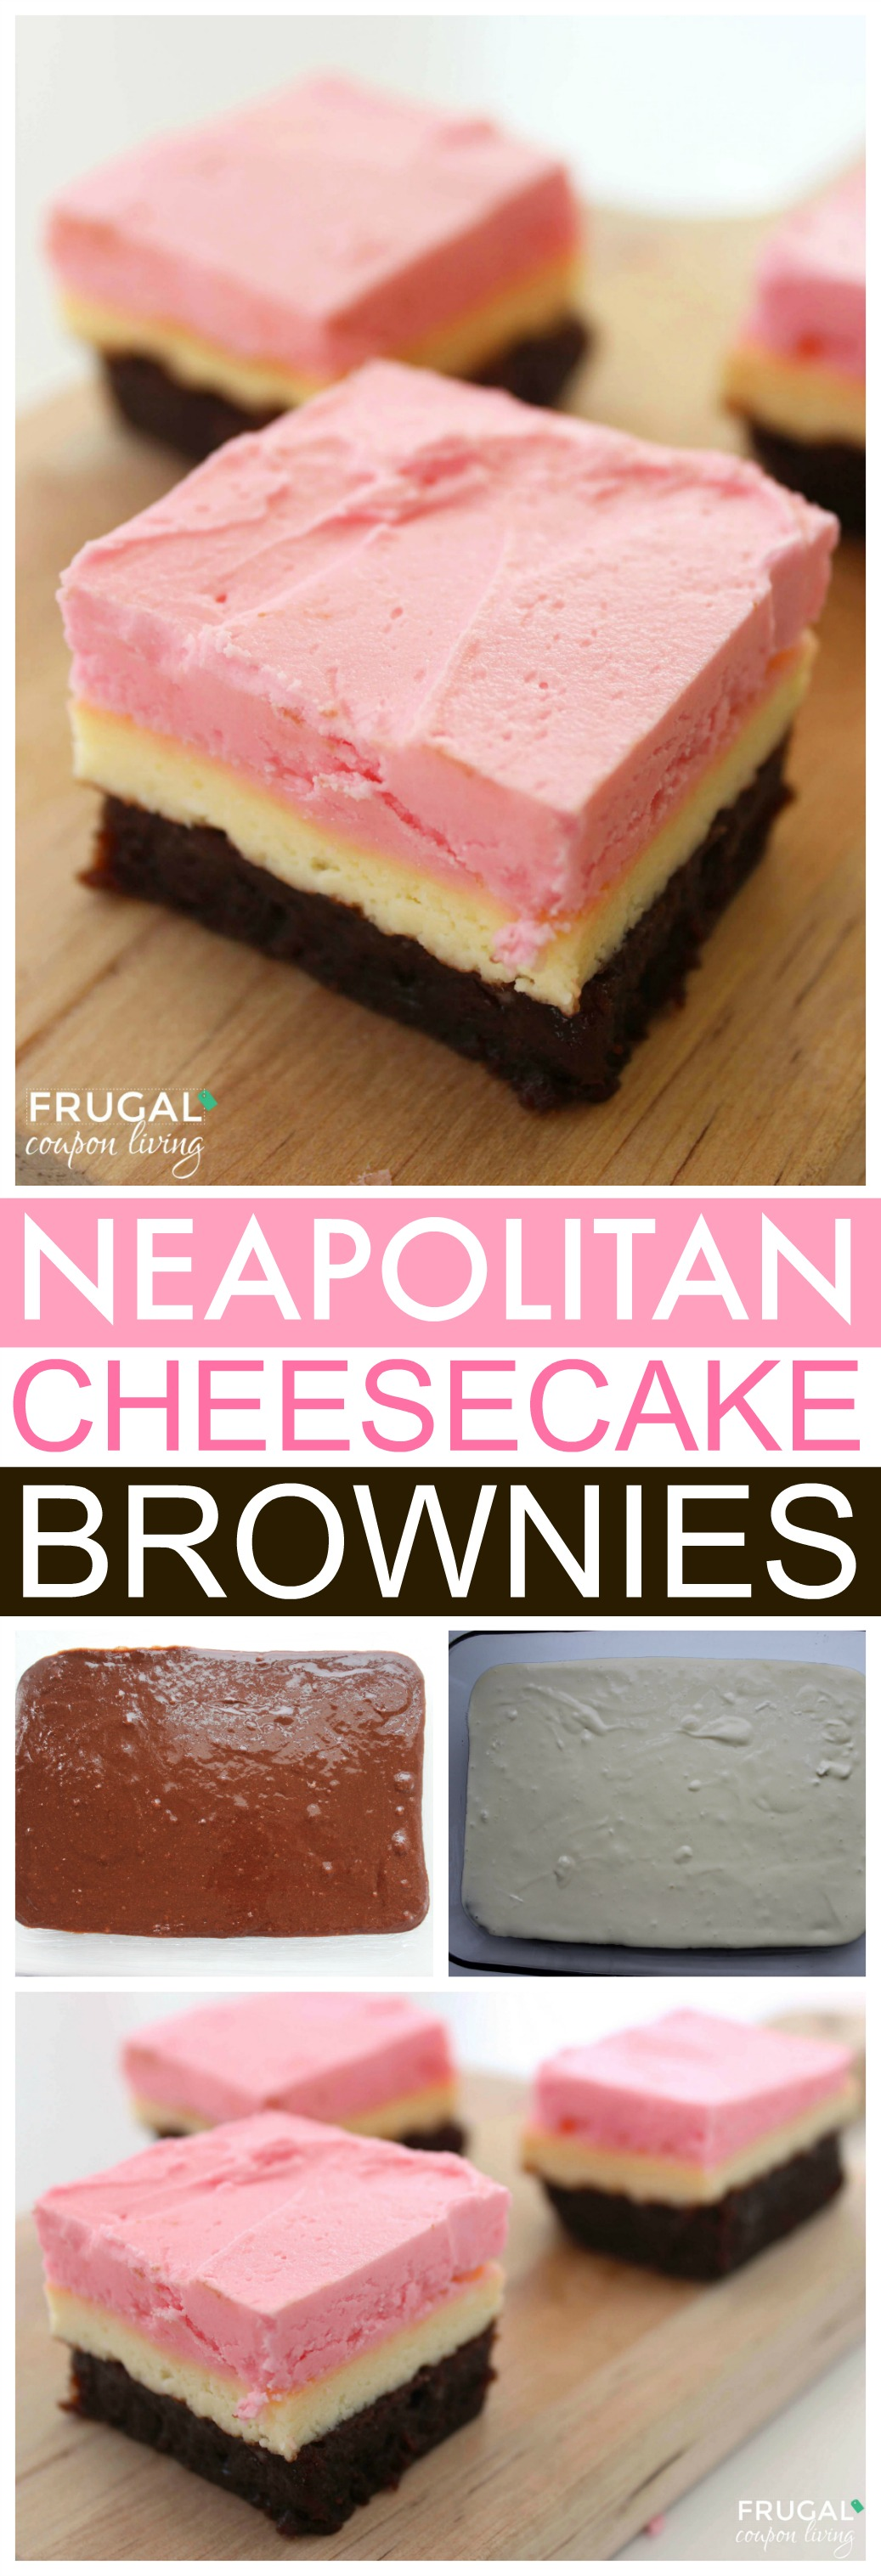 Neapolitan-Cheesecake-Brownies-frugal-coupon-living-collage